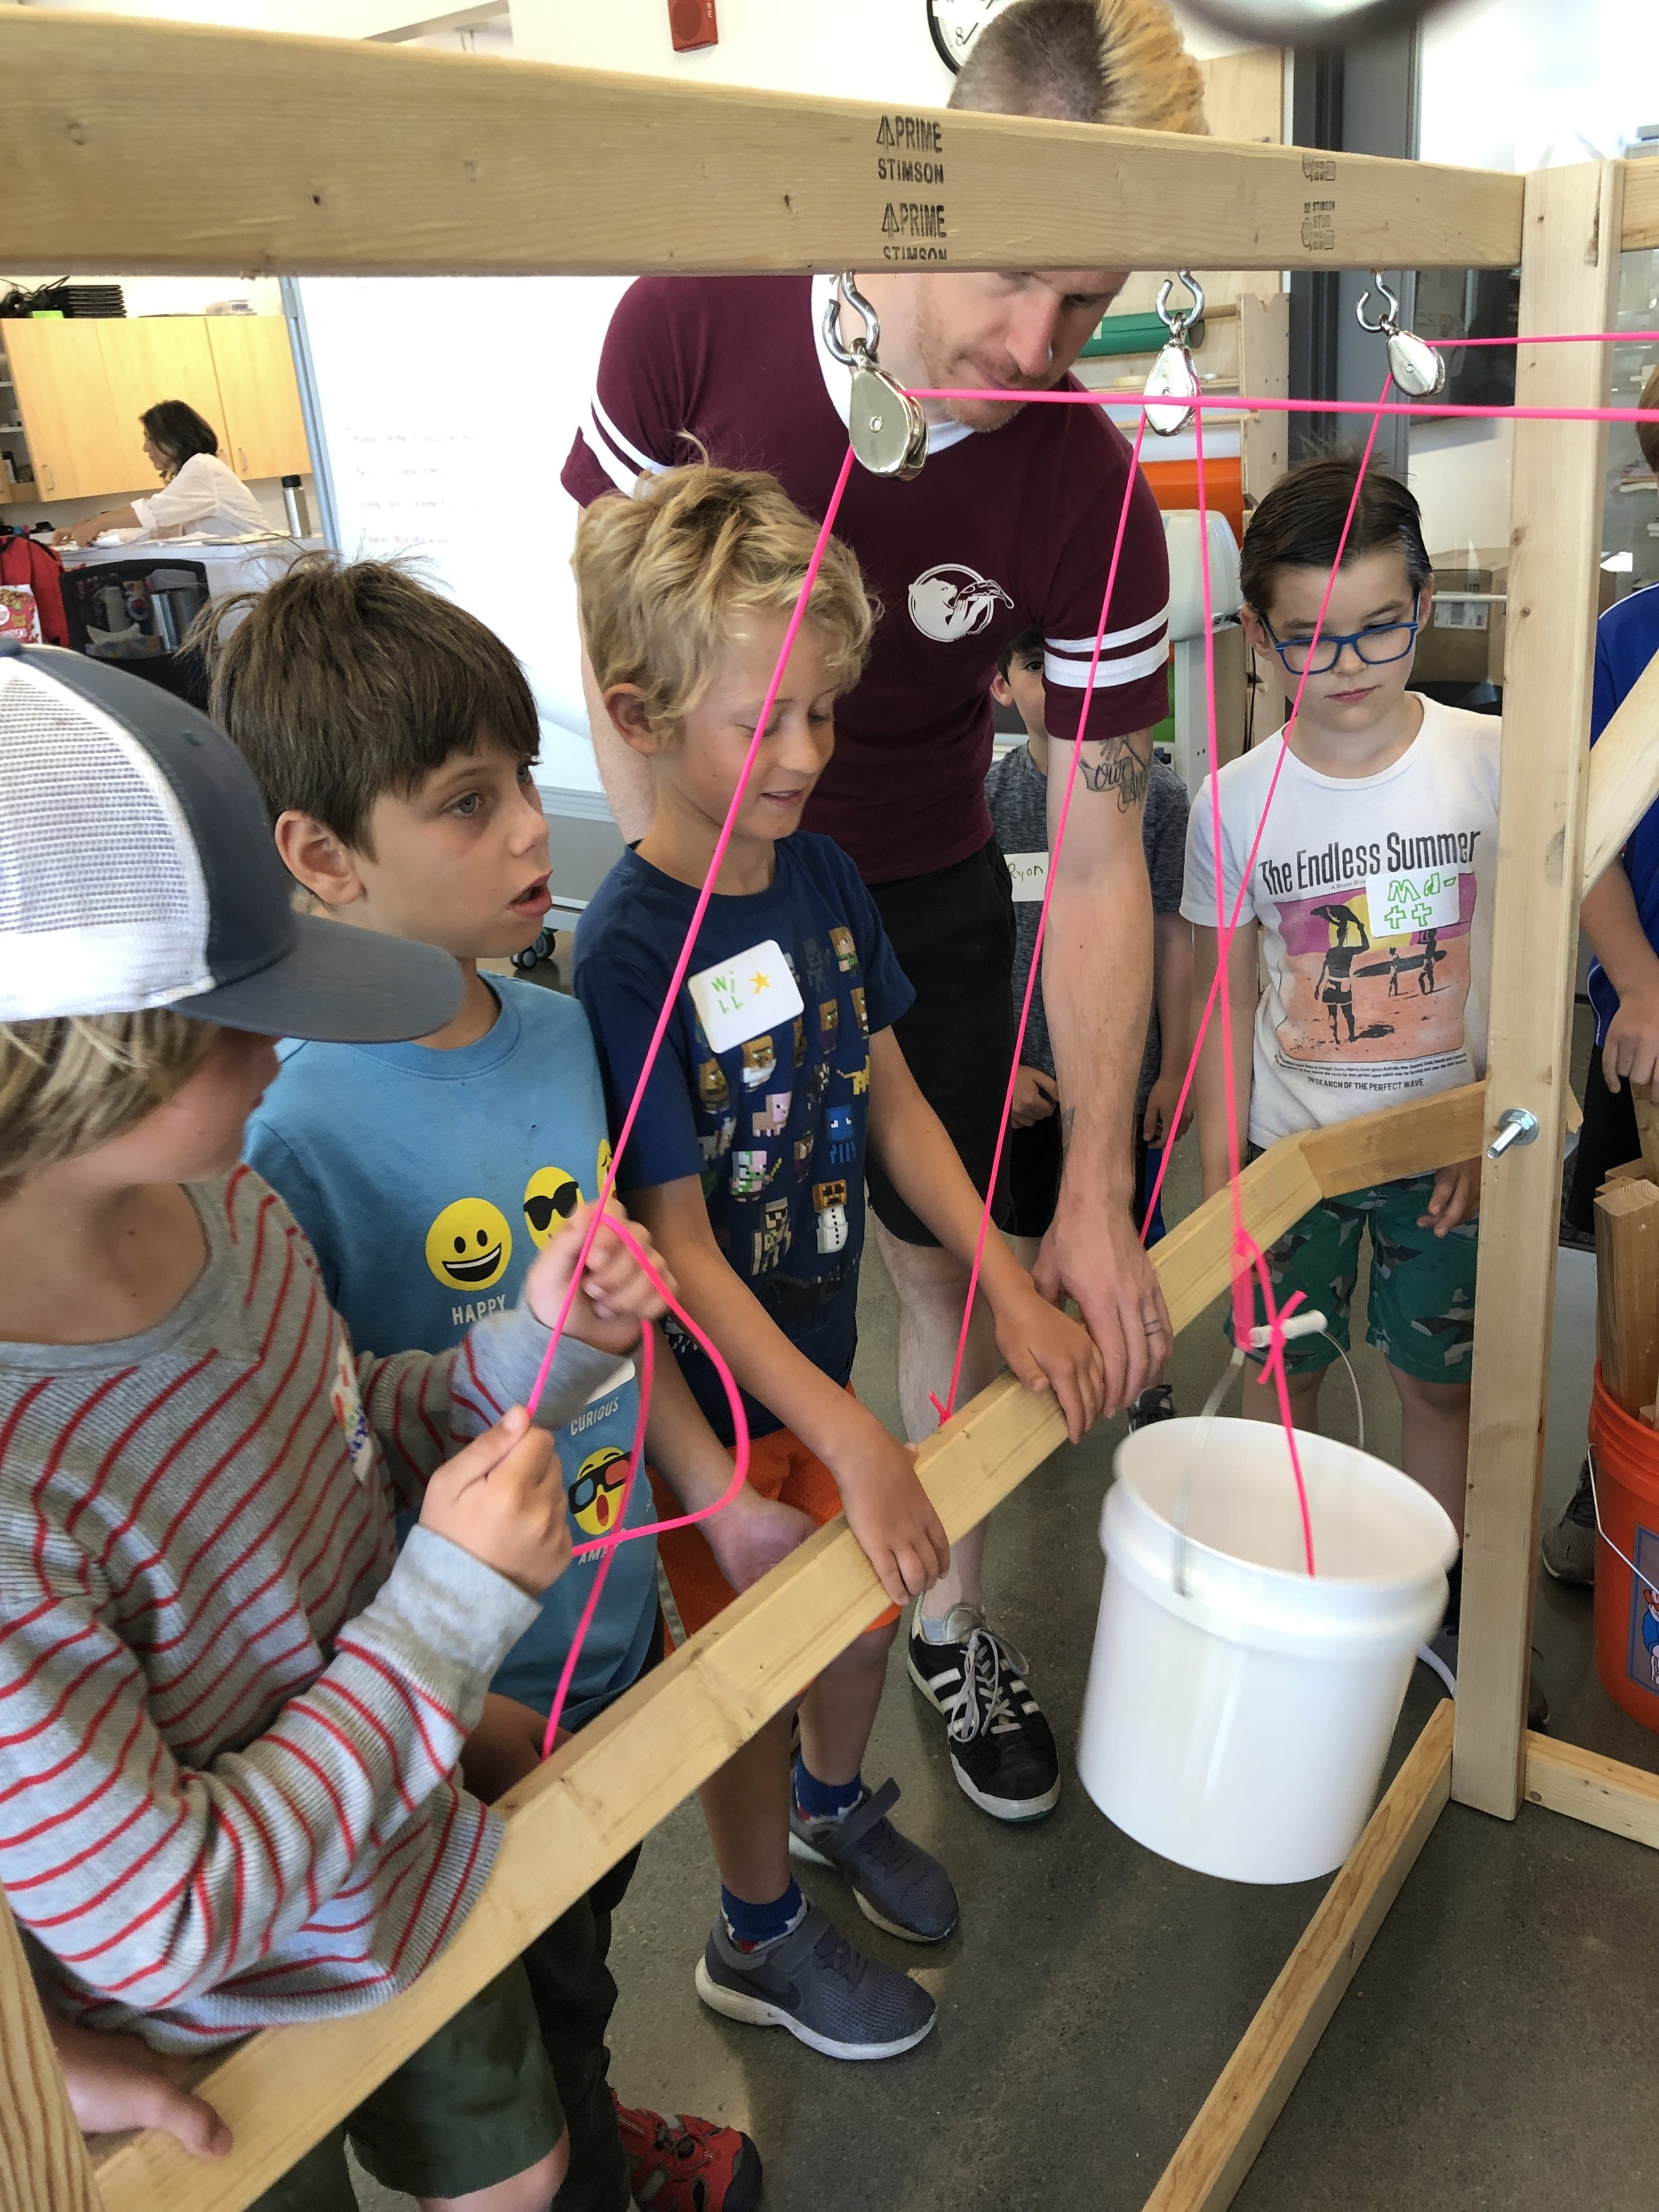 Our collaborators built a pulley station to help demonstrate how pulleys can be used to extend our reach and to lift heavy weights.